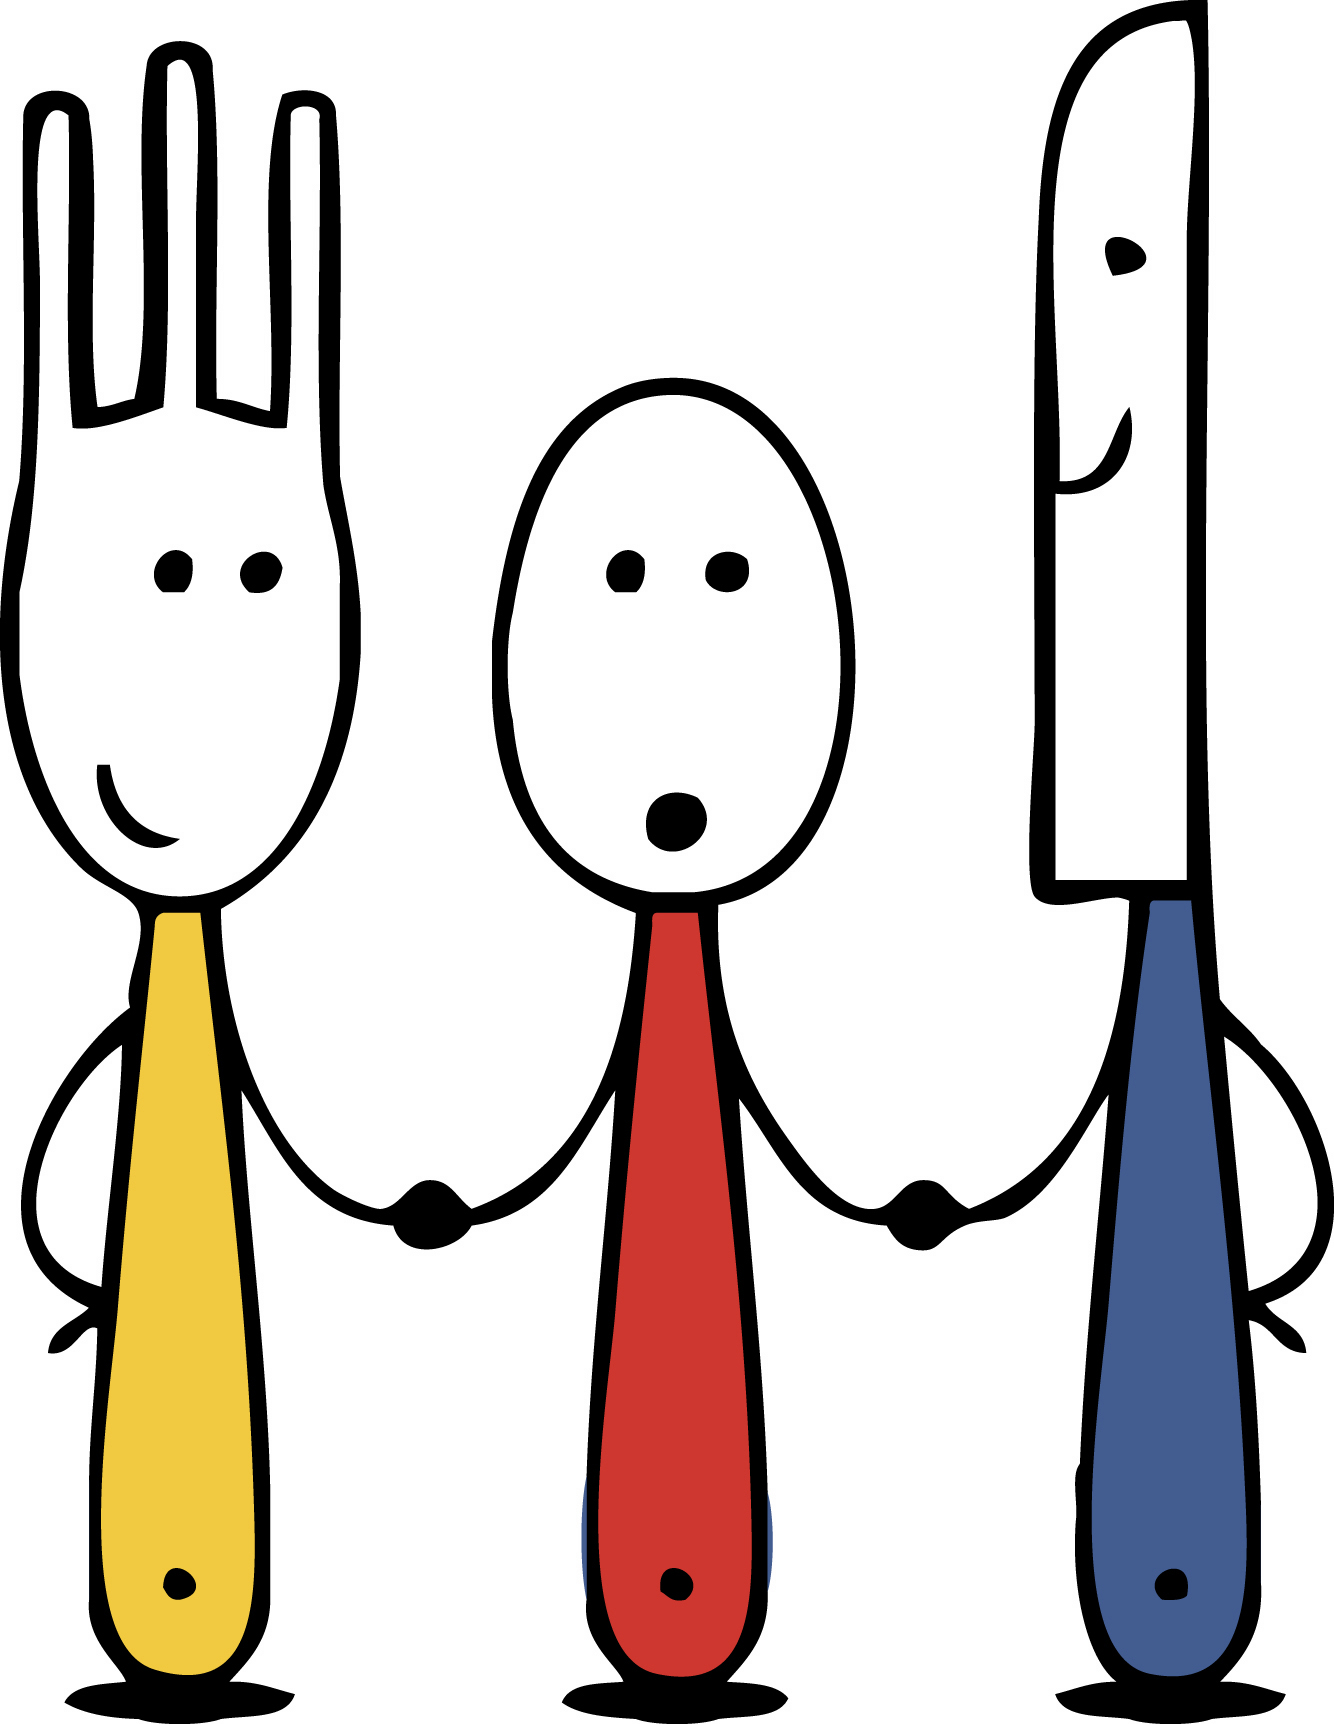 1334x1724 knife and fork fork and spoon clip art chadholtz